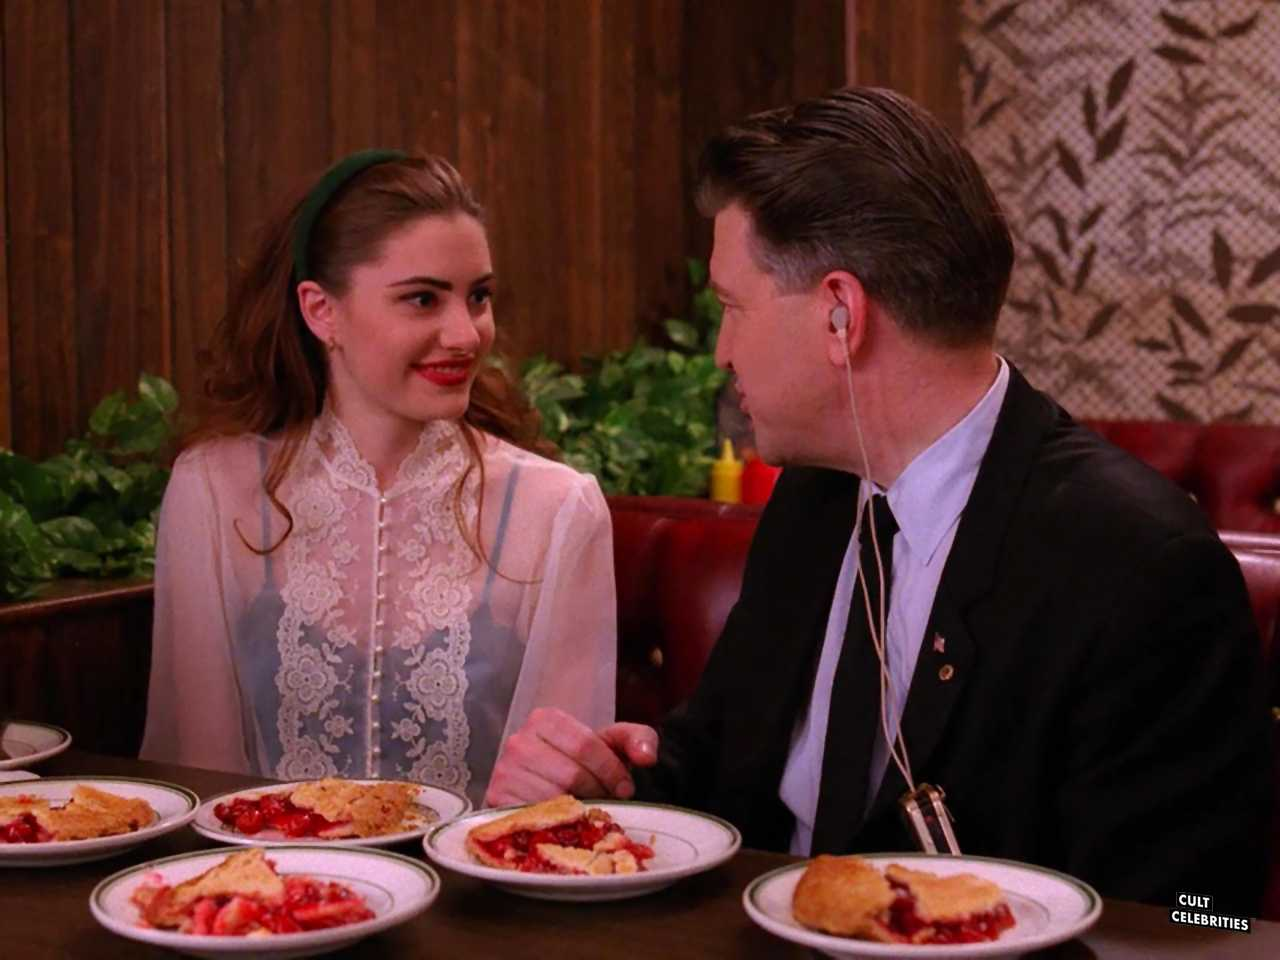 David Lynch and Mädchen Amick in Twin Peaks (1990)